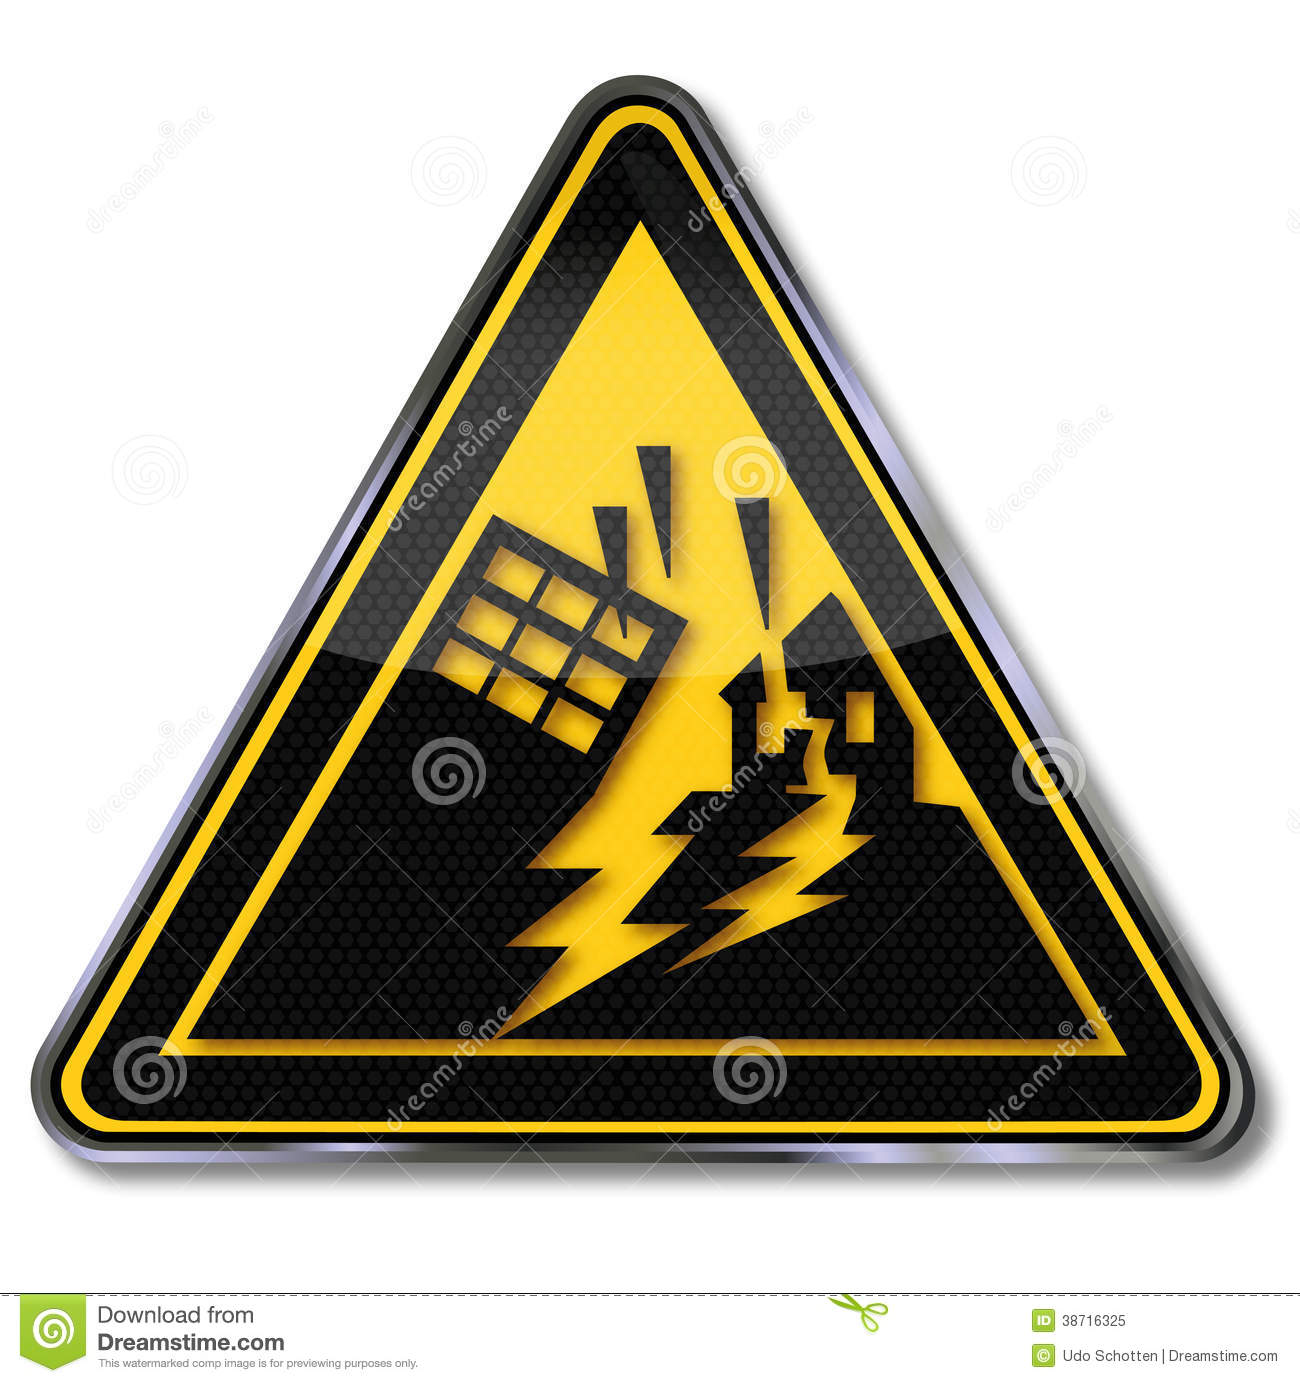 Warning Earthquake And Earthquake Area Royalty Free Stock. Coated Tongue Signs. Tennis Fan Signs Of Stroke. Mystic Signs. Avengers Signs Of Stroke. Ref Calls Signs Of Stroke. Woman Symptom Signs. Seasonal Affective Signs Of Stroke. Lock Out Tag Out Signs